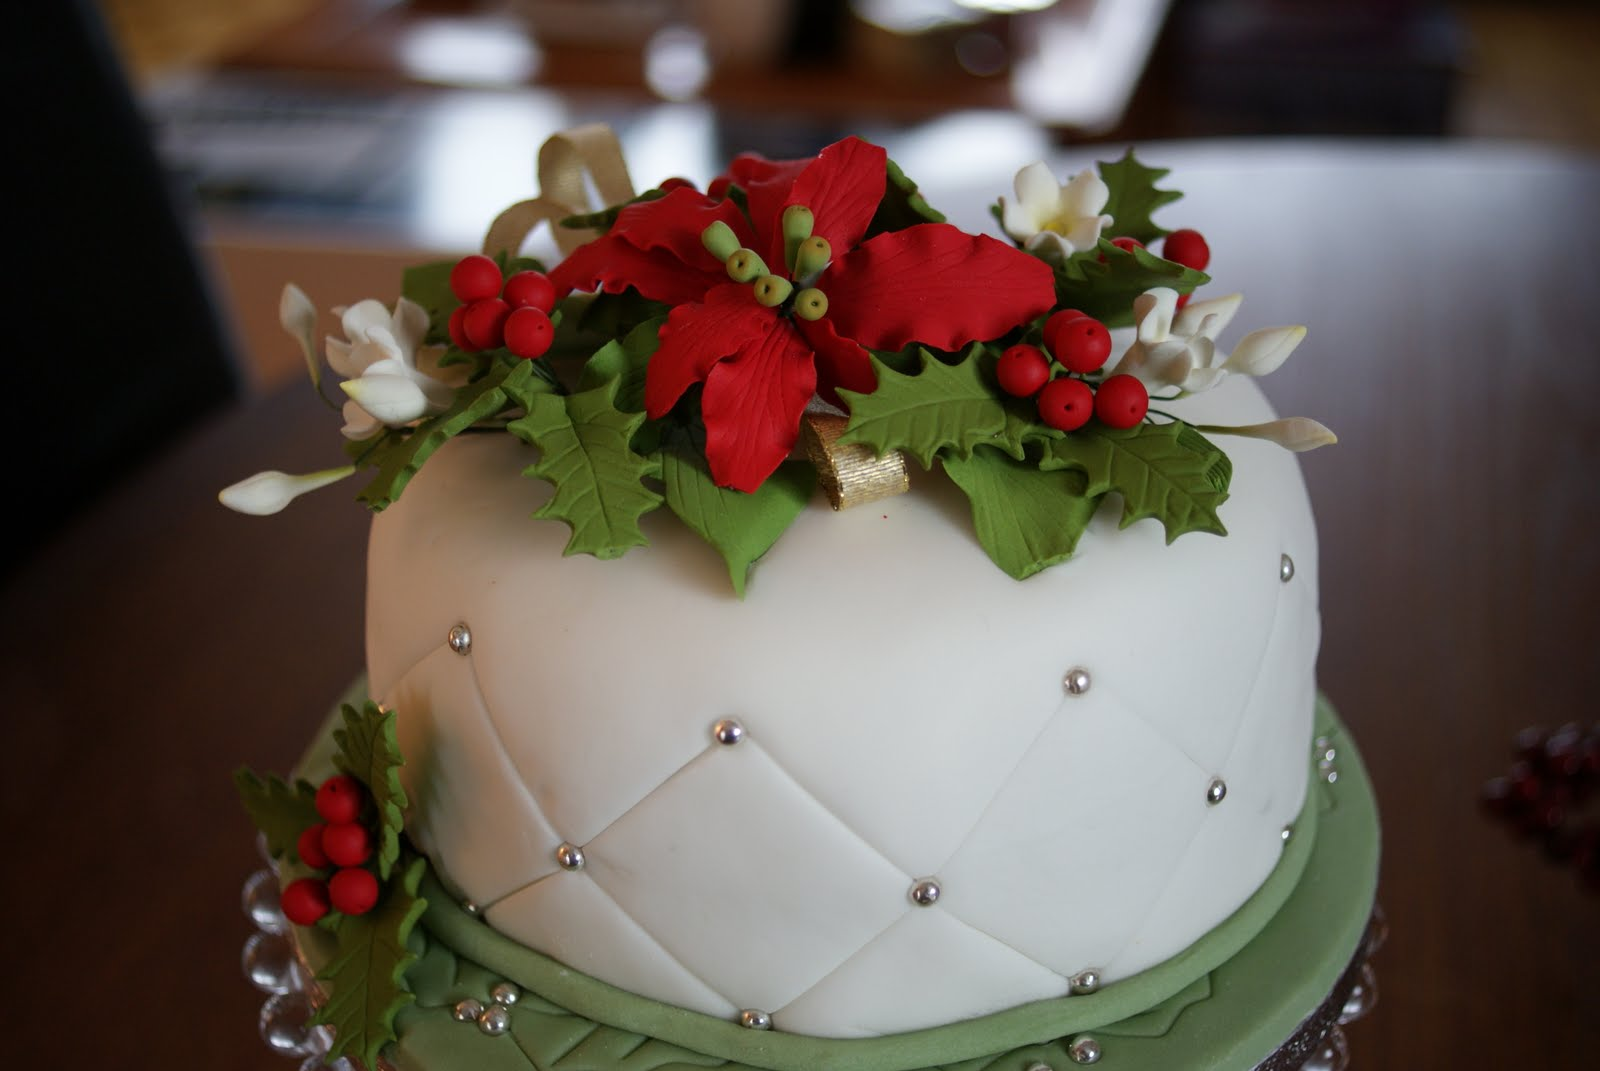 Festivals pictures christmas cakes ideas nightmare for Decoration ideas for christmas cake